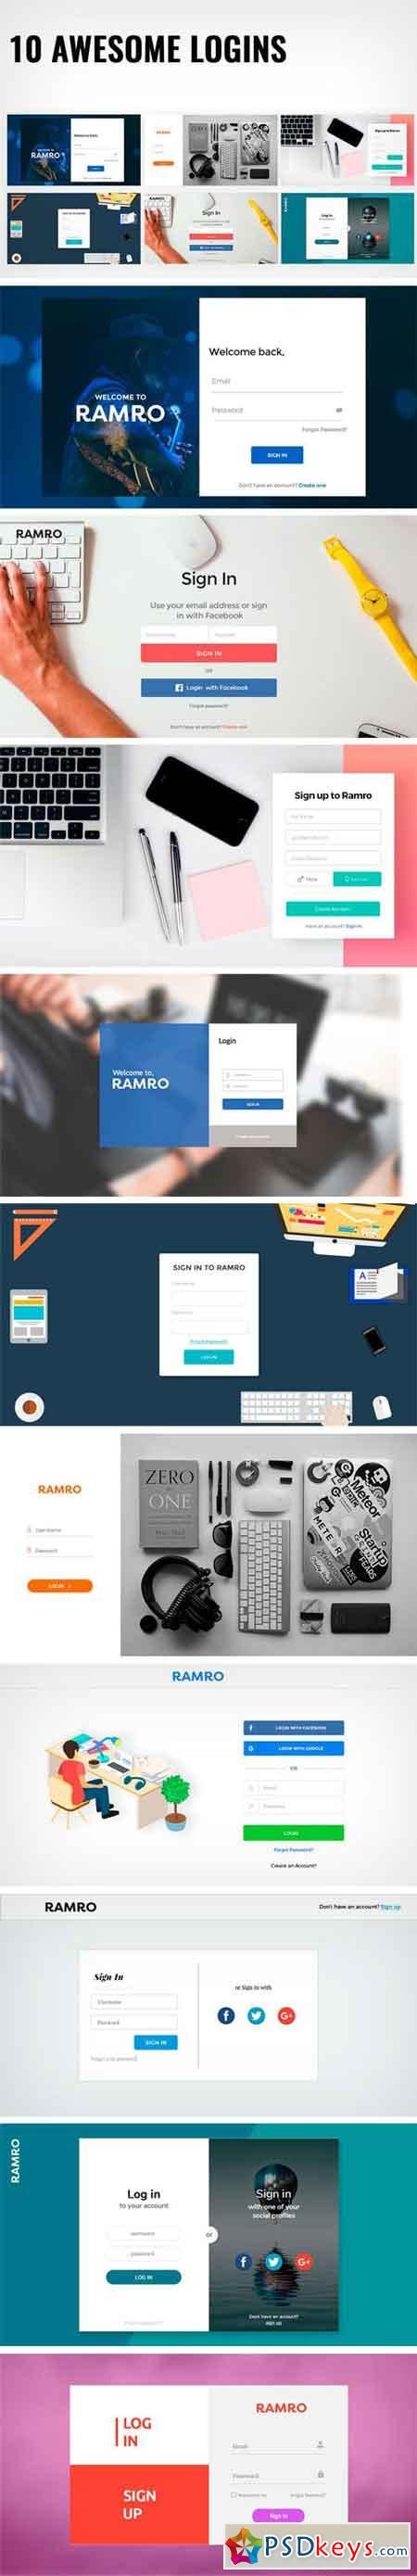 Ramro Web UI Kit - Login Signups 1582343